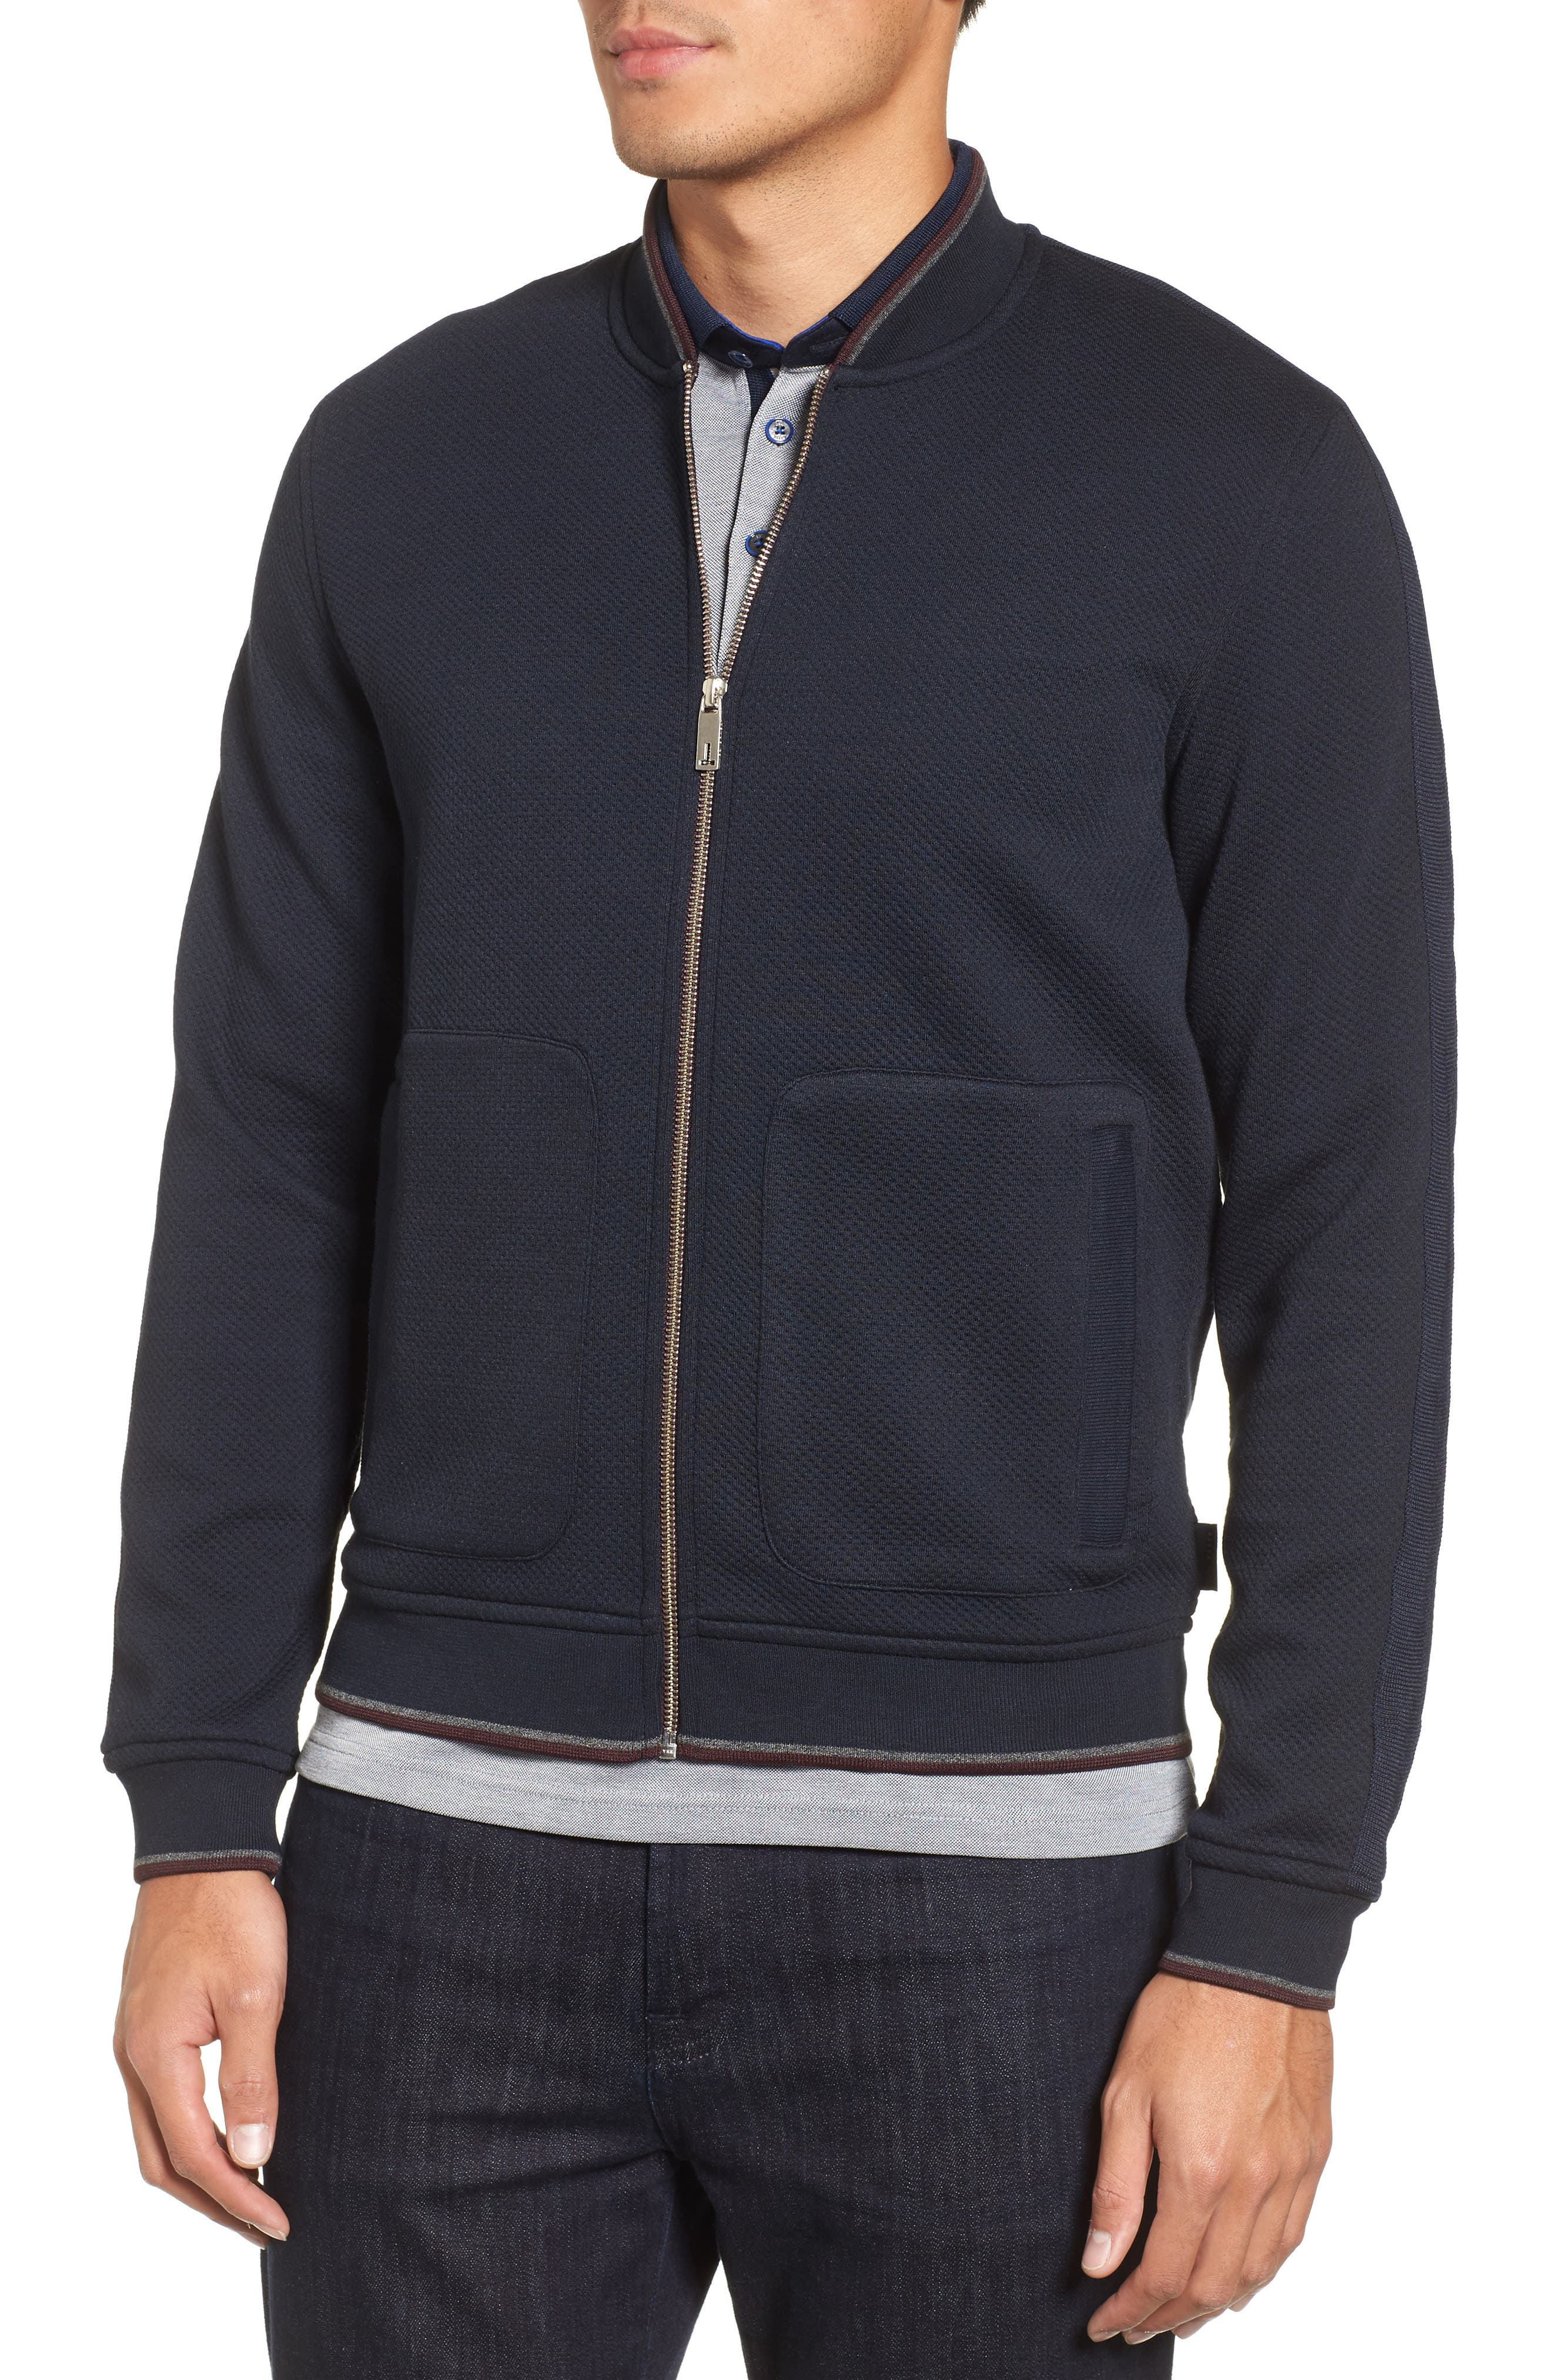 Whatts Trim Fit Textured Bomber Jacket,                             Alternate thumbnail 4, color,                             410